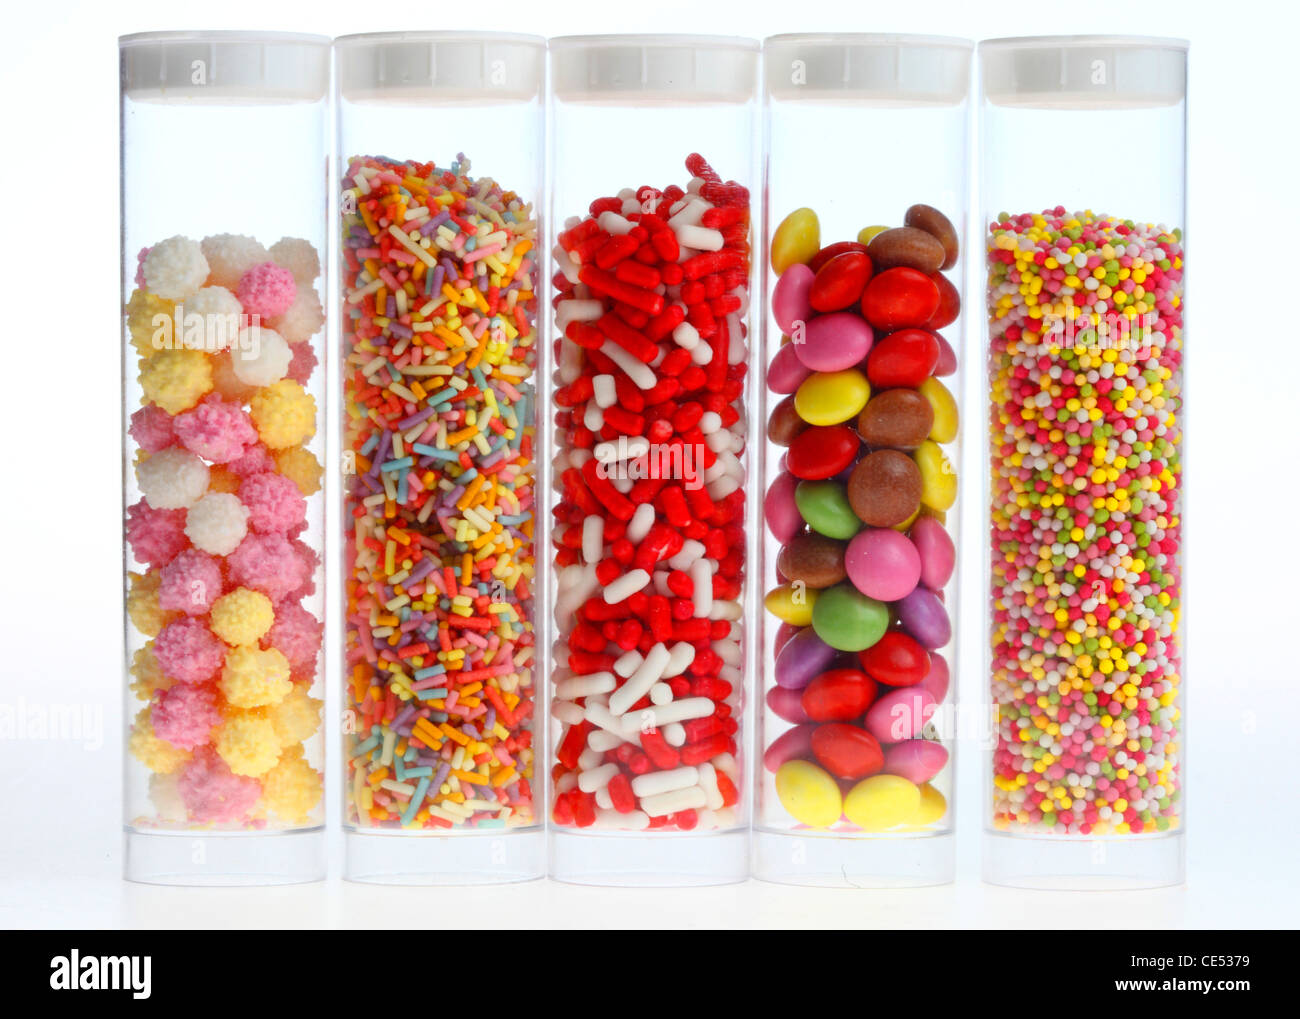 Sweets Different Colors Taste S Shapes Contains Lots